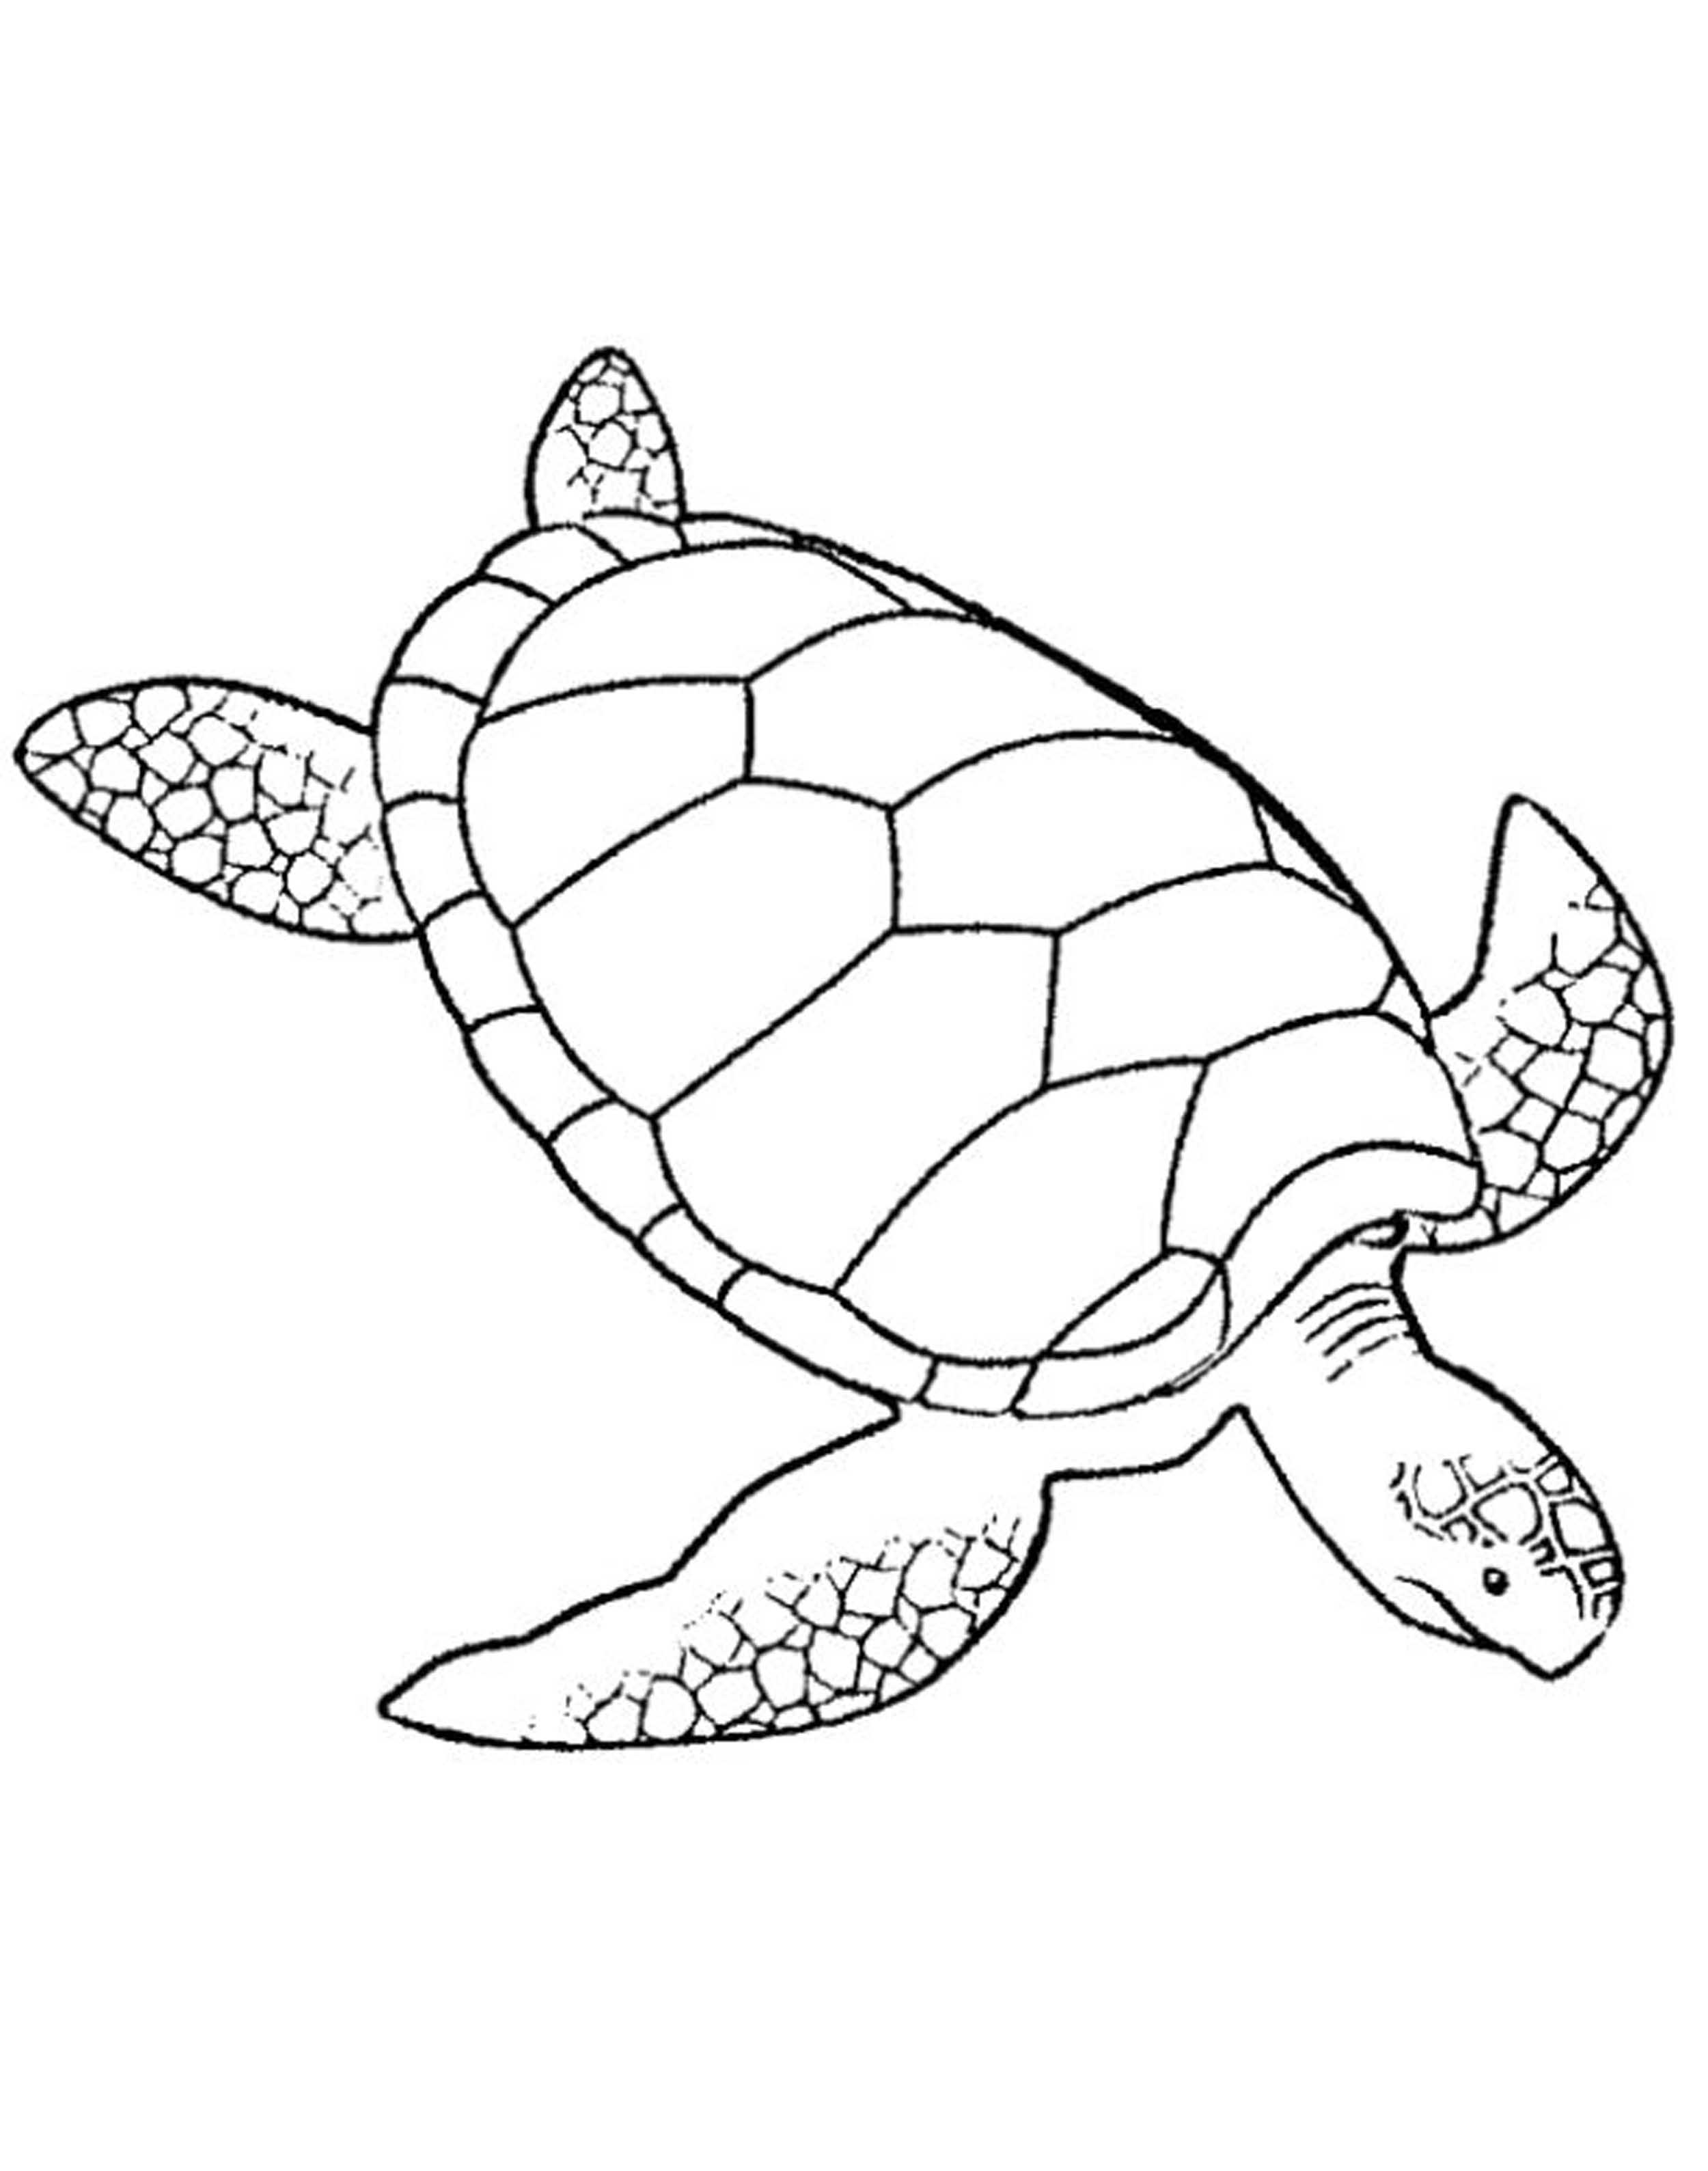 coloring picture turtle turtles to download for free turtles kids coloring pages picture turtle coloring